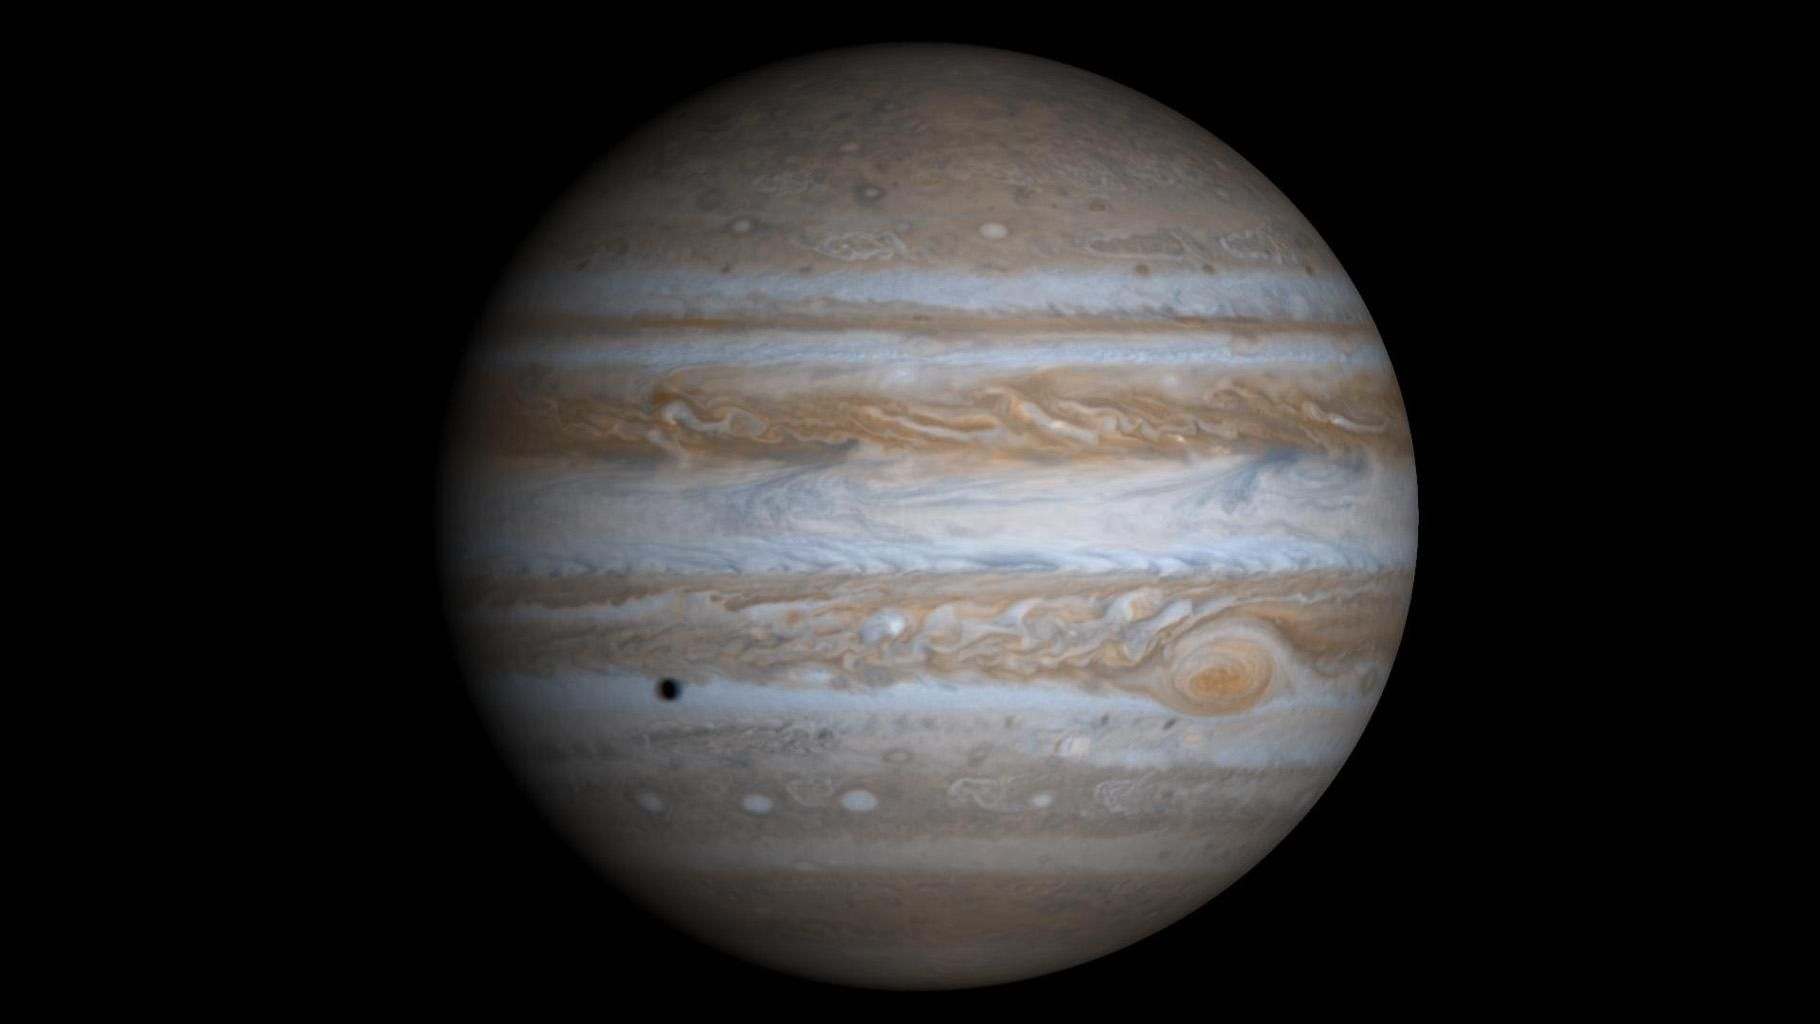 1820x1024 Space Images | High Resolution Globe of Jupiter